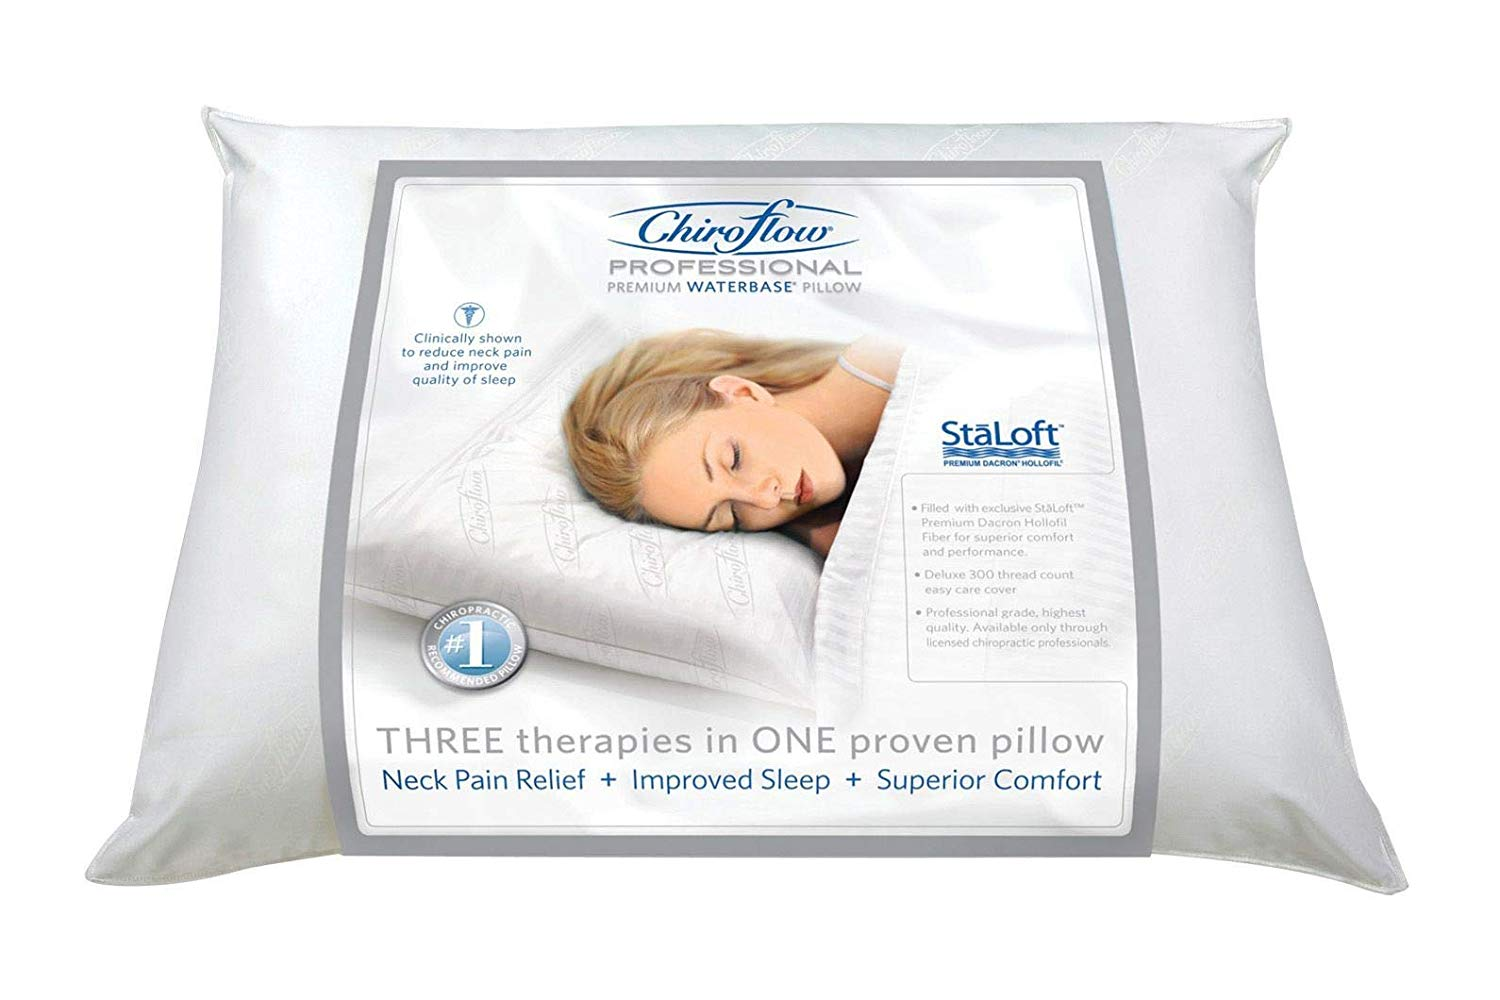 Chiroflow Best Orthopedic Pillow review by www.dailysleep.org